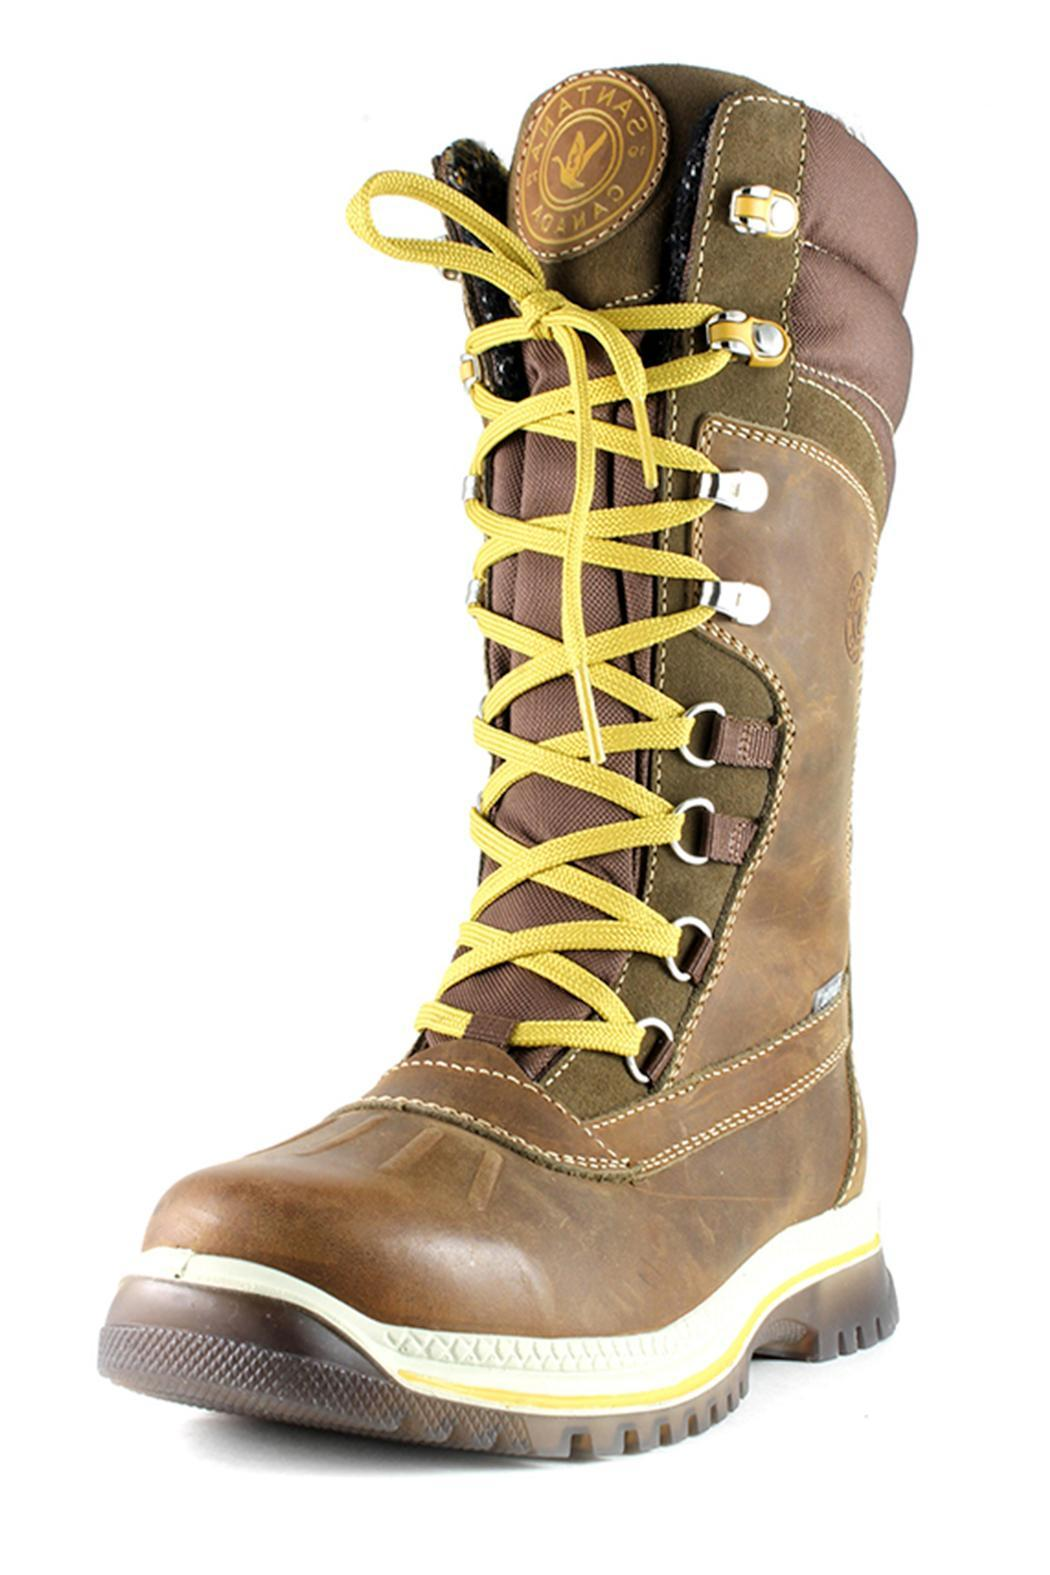 4123363b59b Santana Canada Modena Winter Boot from Vermont by green envy ...